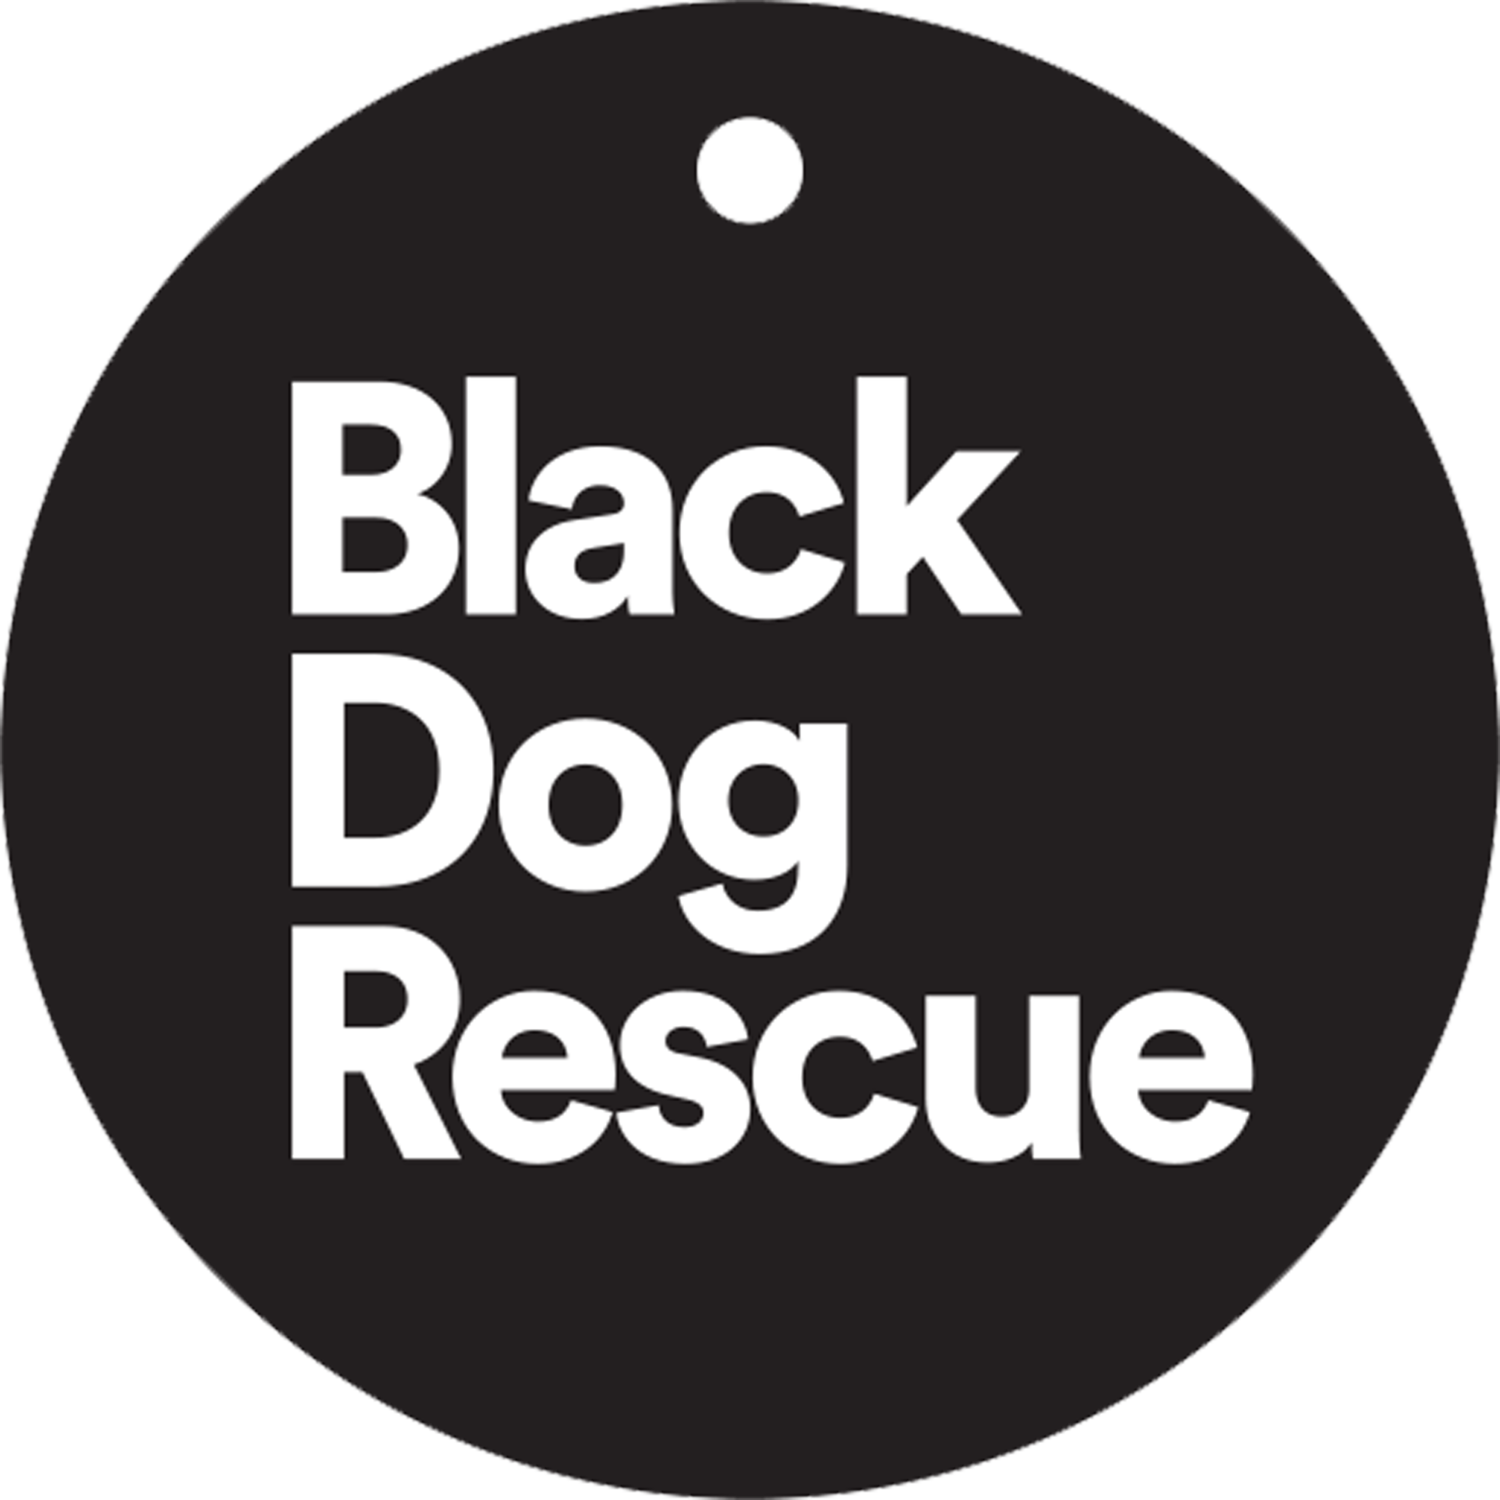 Black Dog Rescue